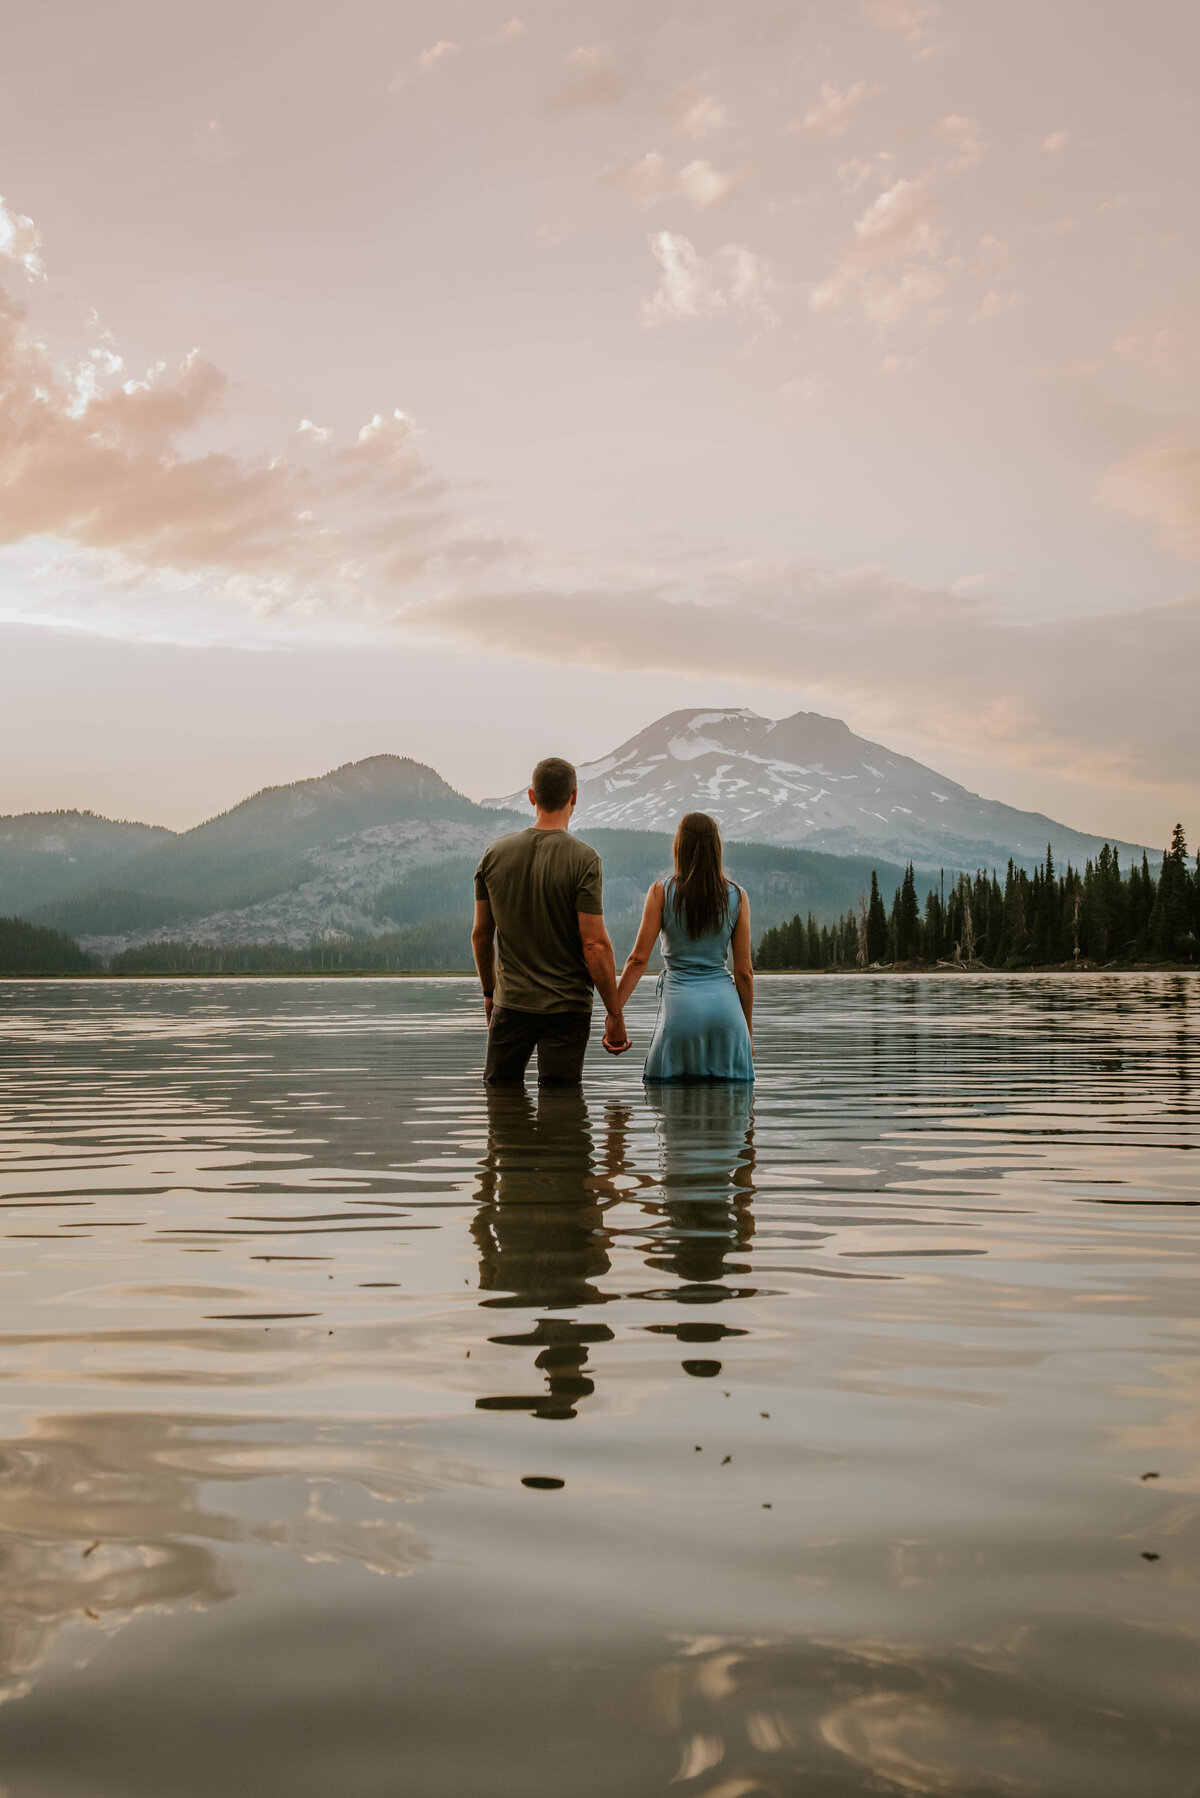 sparks-lake-oregon-couple-photographer-elopement-bend-lakes-bachelor-sisters-sunset-6024